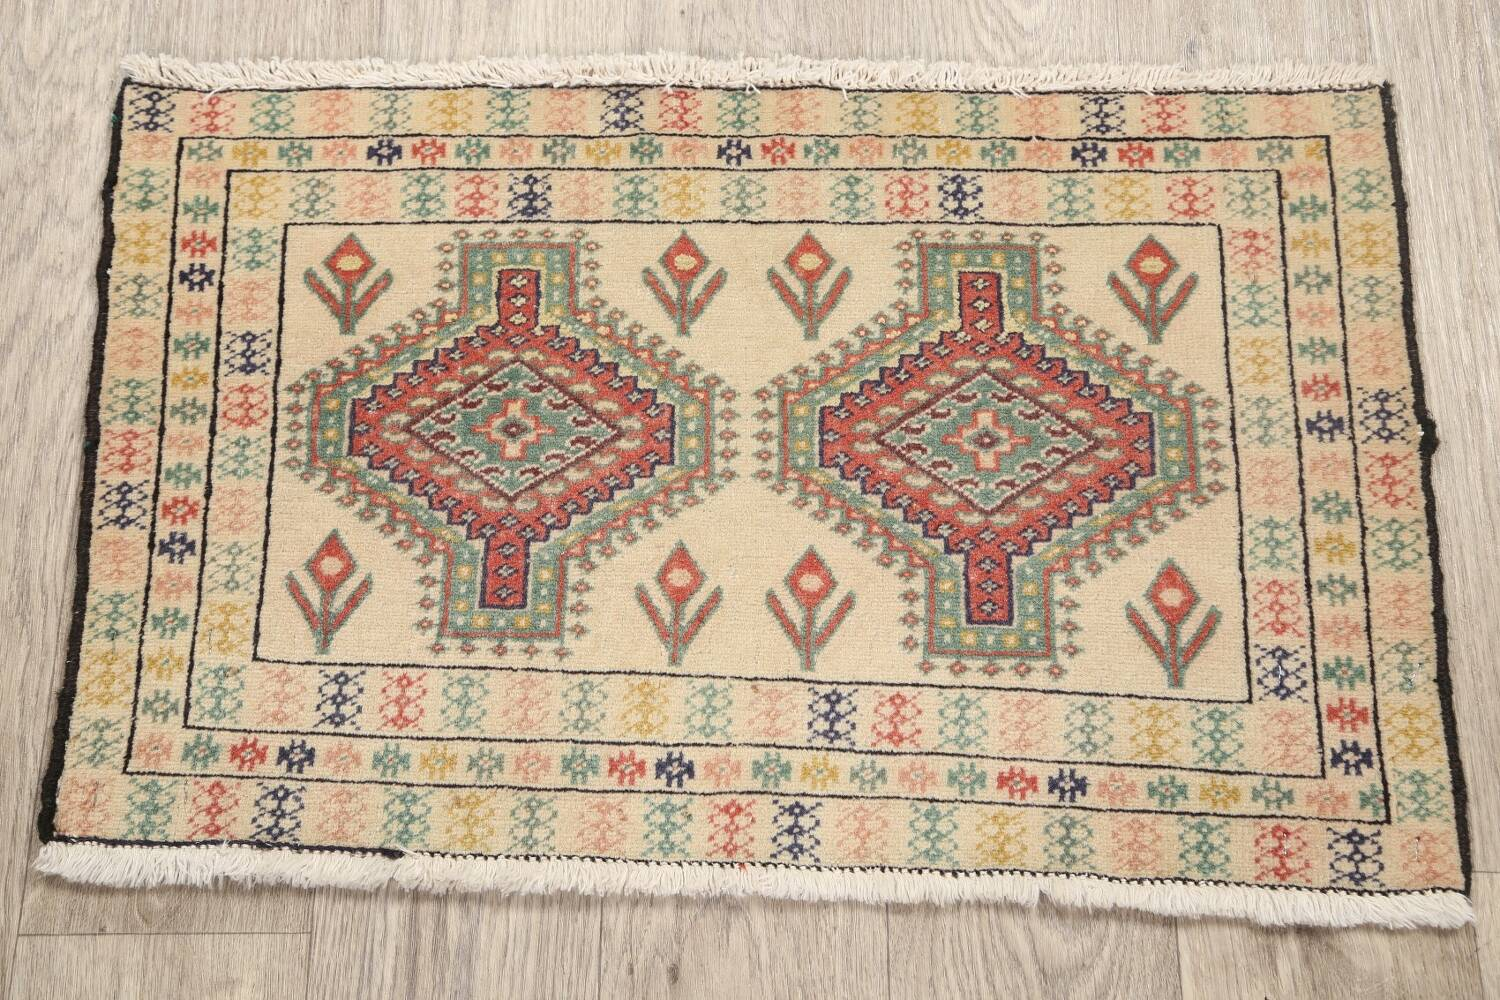 South-Western Style Bokhara Oriental Area Rug 1x2 image 10